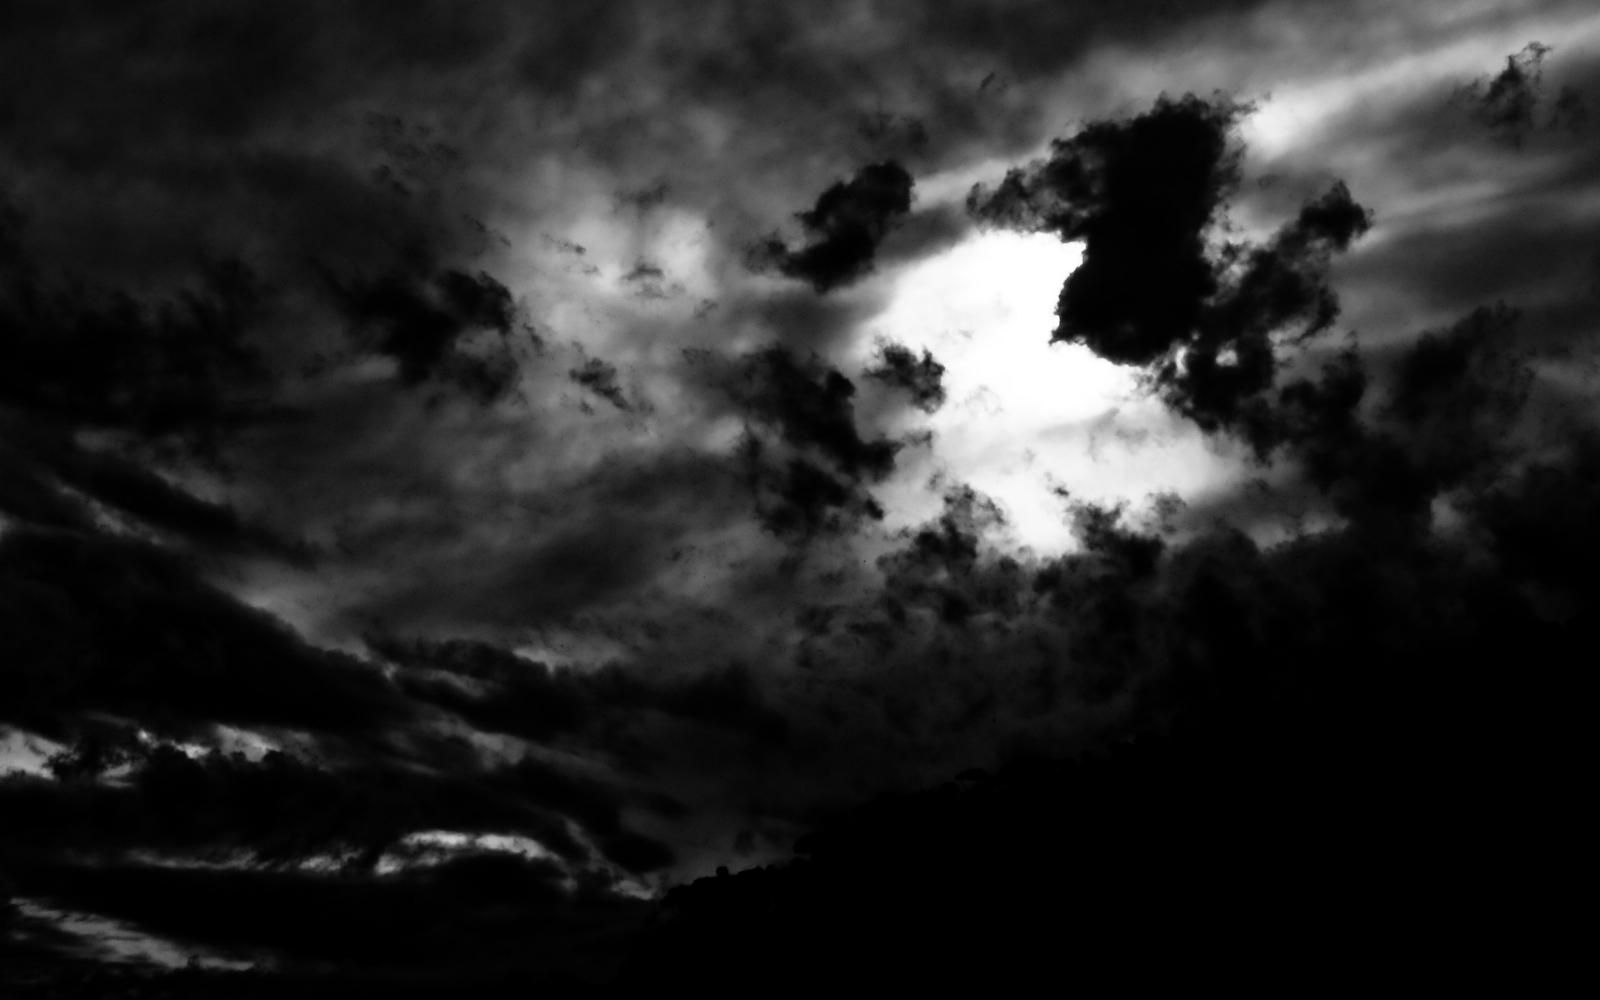 Dark Wallpaper Hd Desktop Best Wallpaper Hd Dark Background Wallpaper Cloud Wallpaper Hd Dark Wallpapers